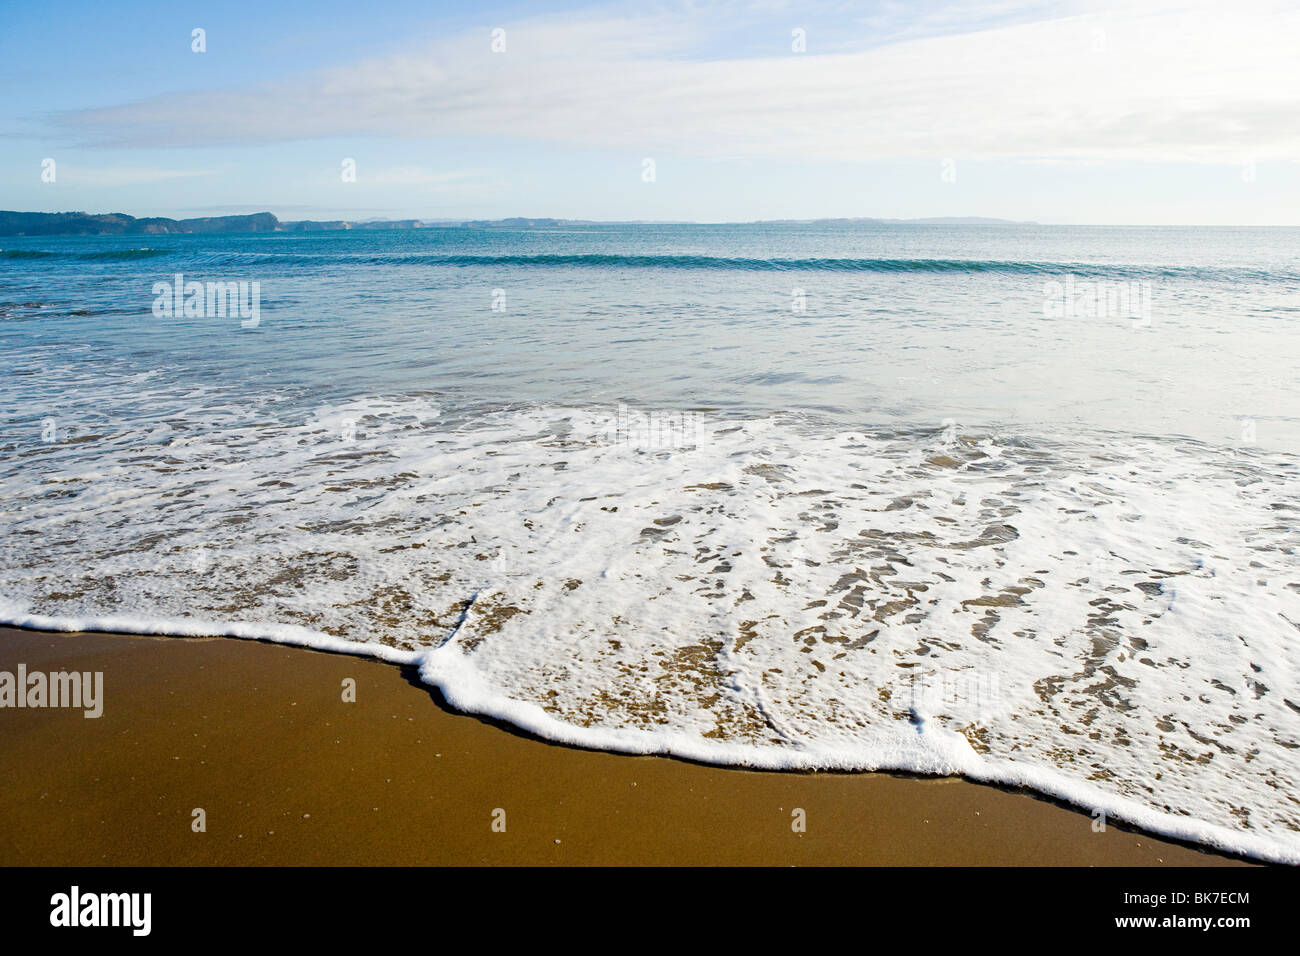 Auckland , shore at Hauraki Gulf - Stock Image